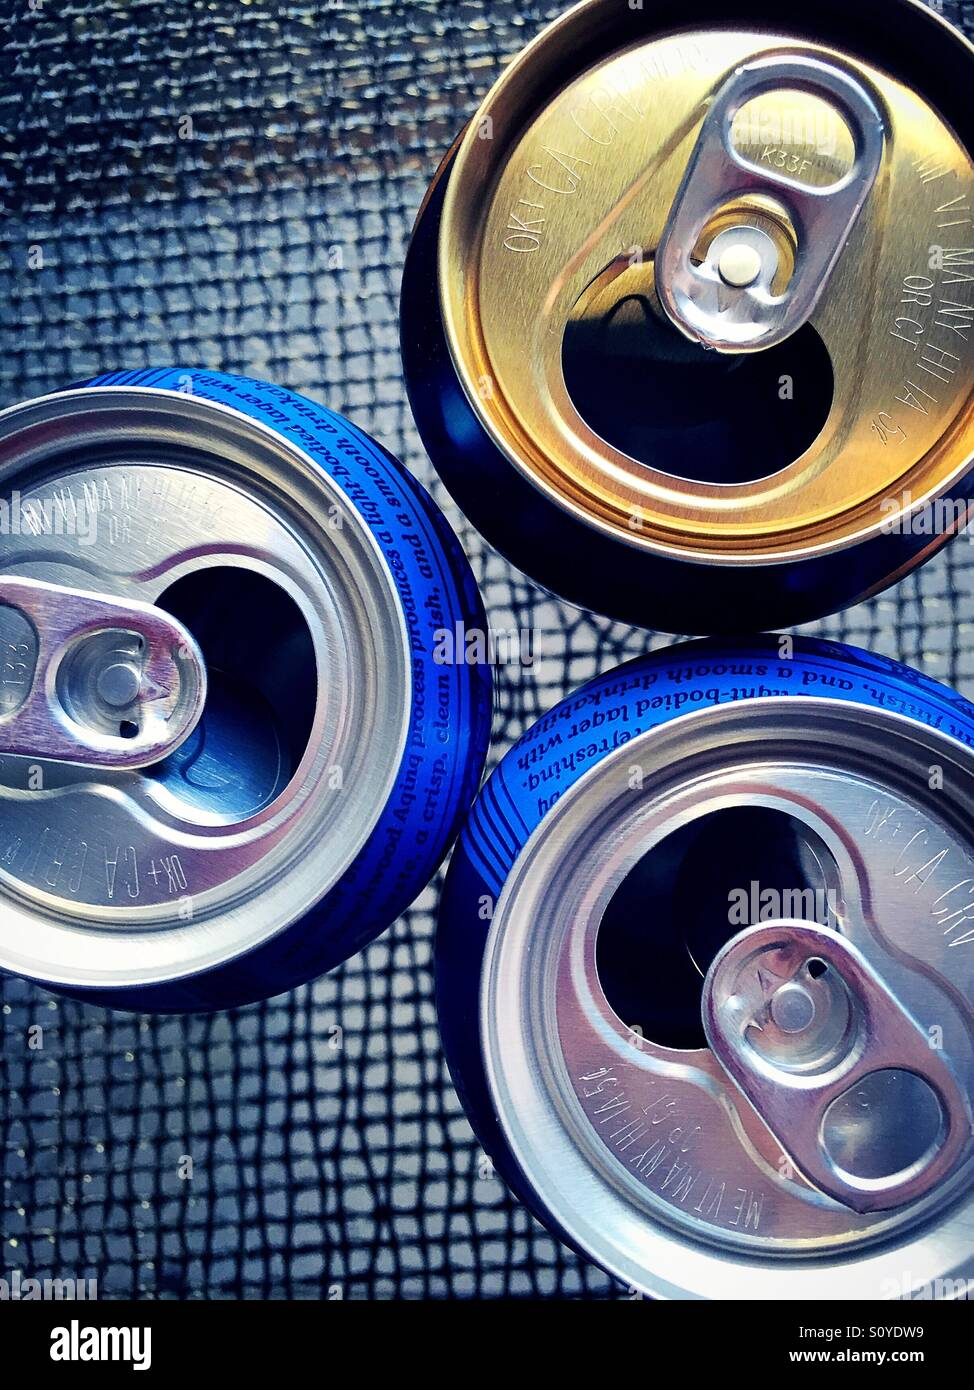 Metal cans - Stock Image